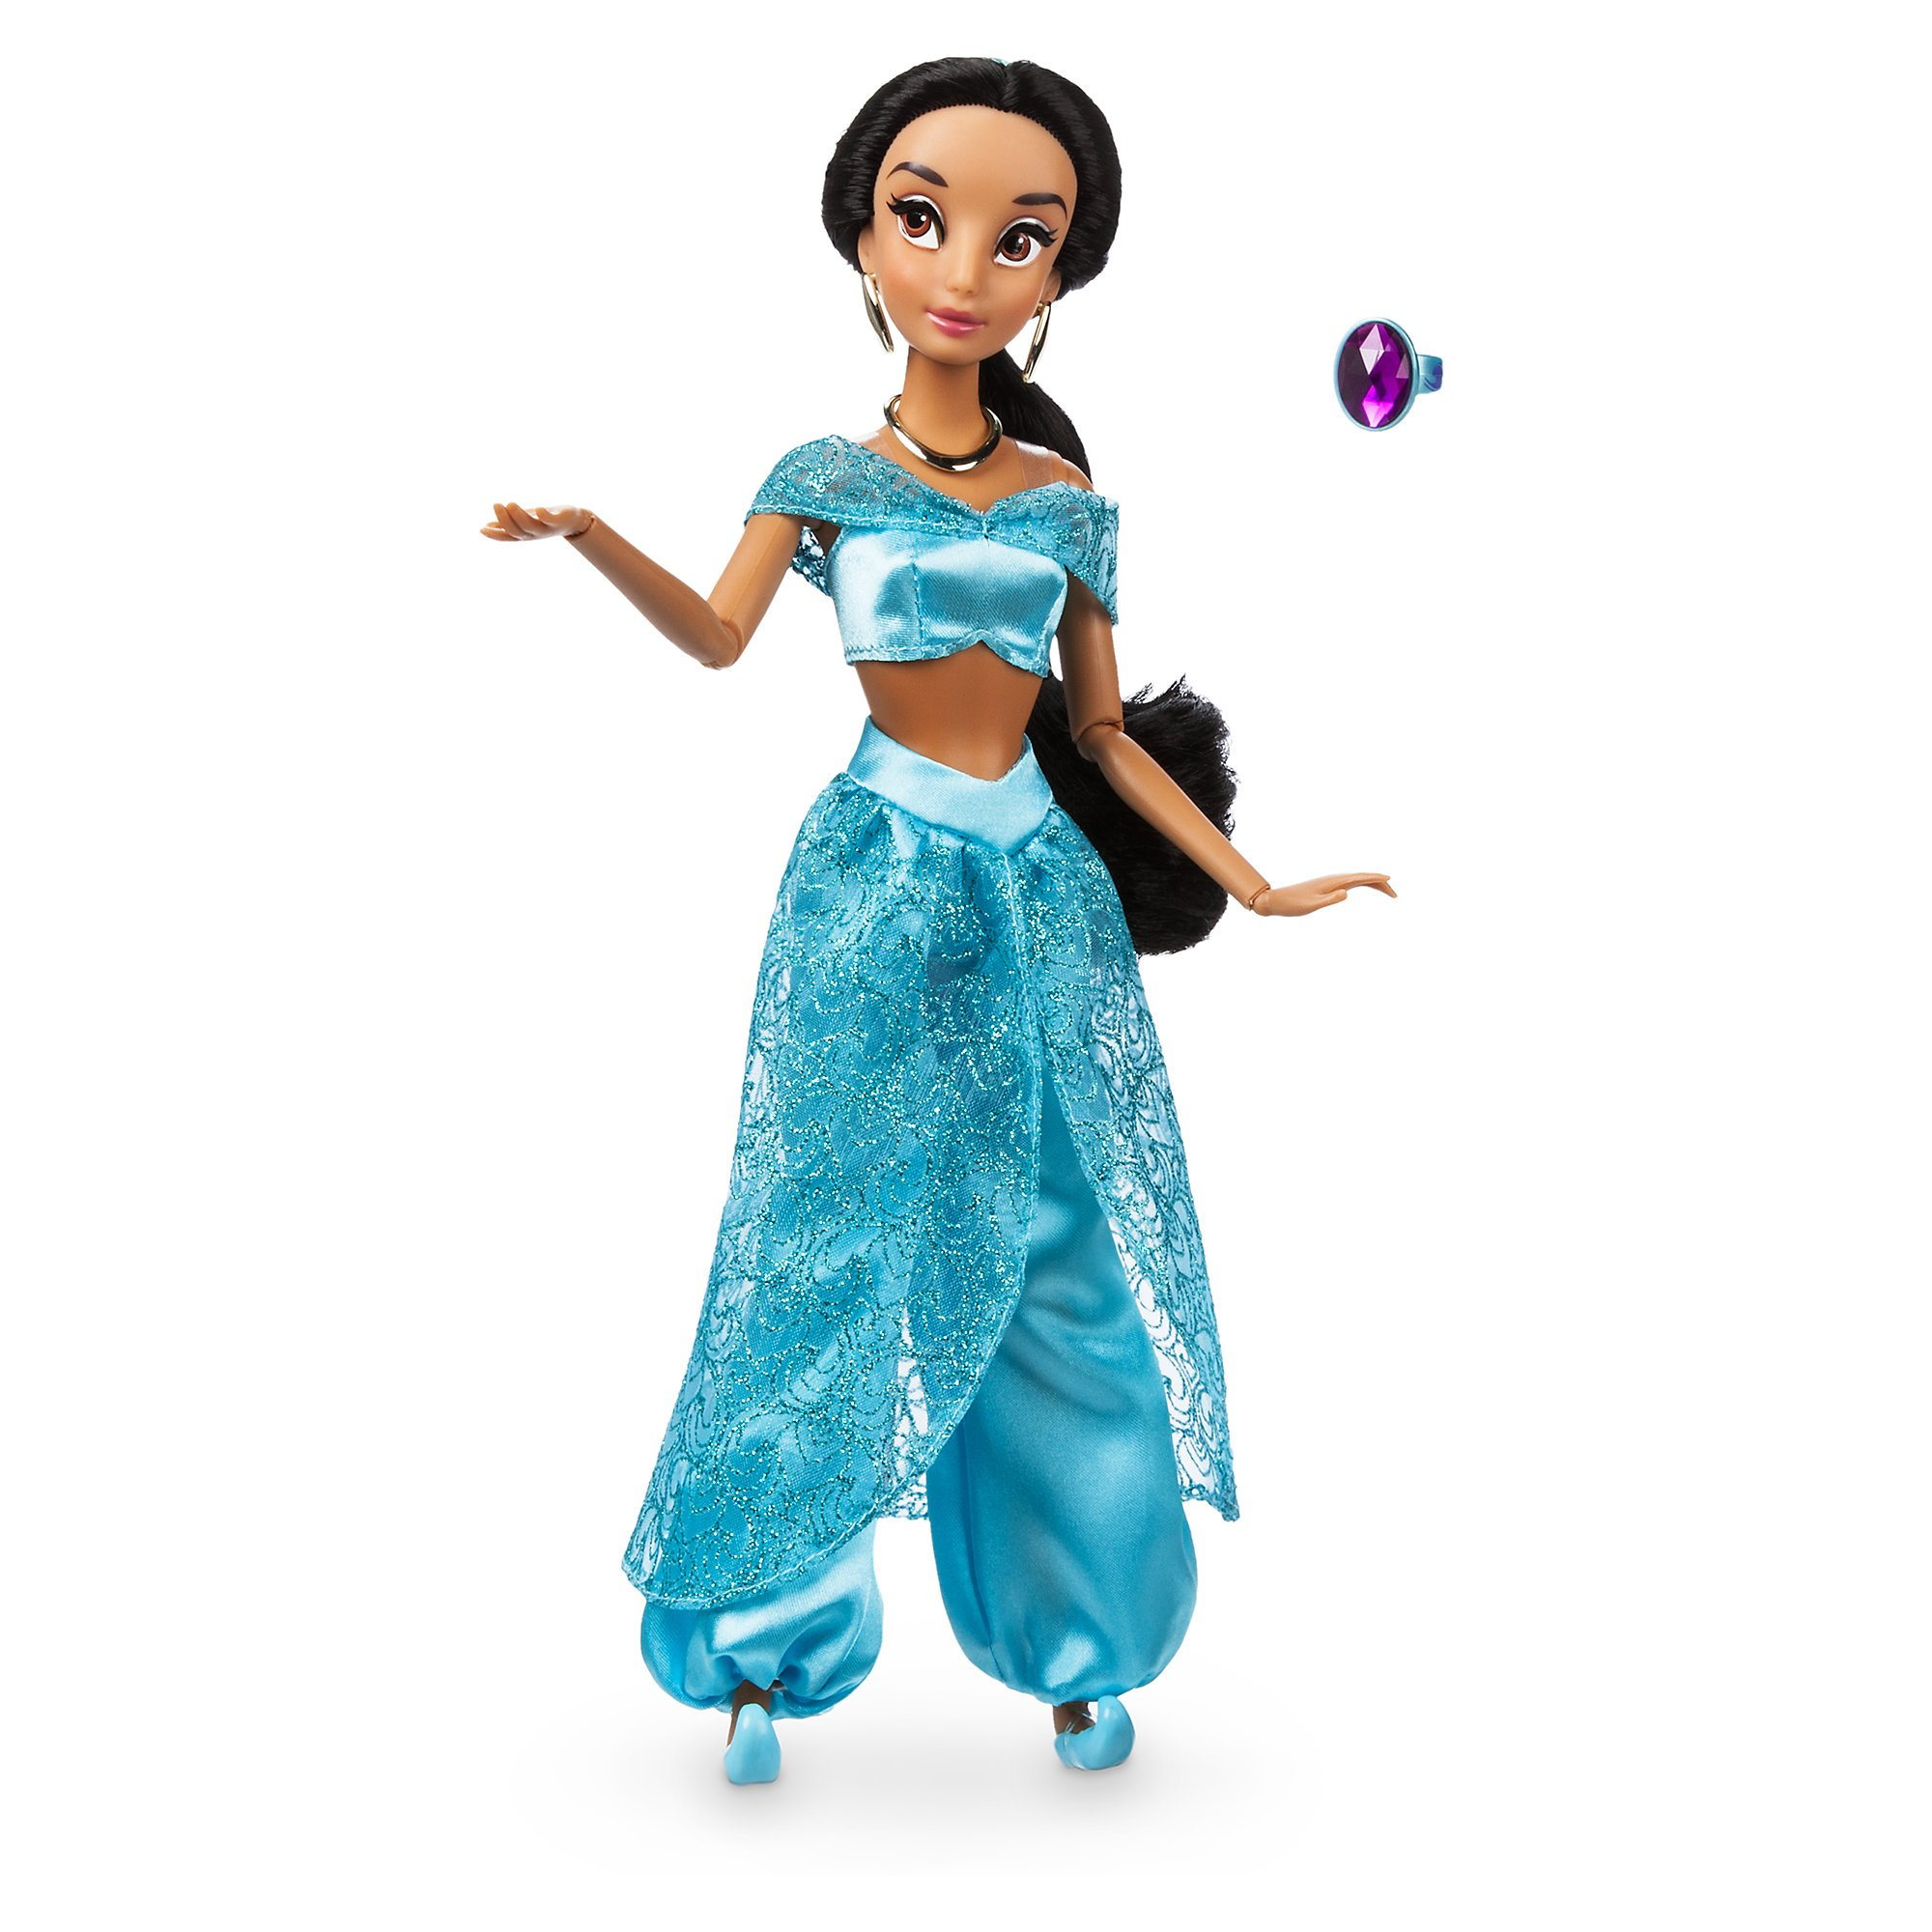 Disney Jasmine Classic Doll with Ring - Aladdin - 11 ½ Inches